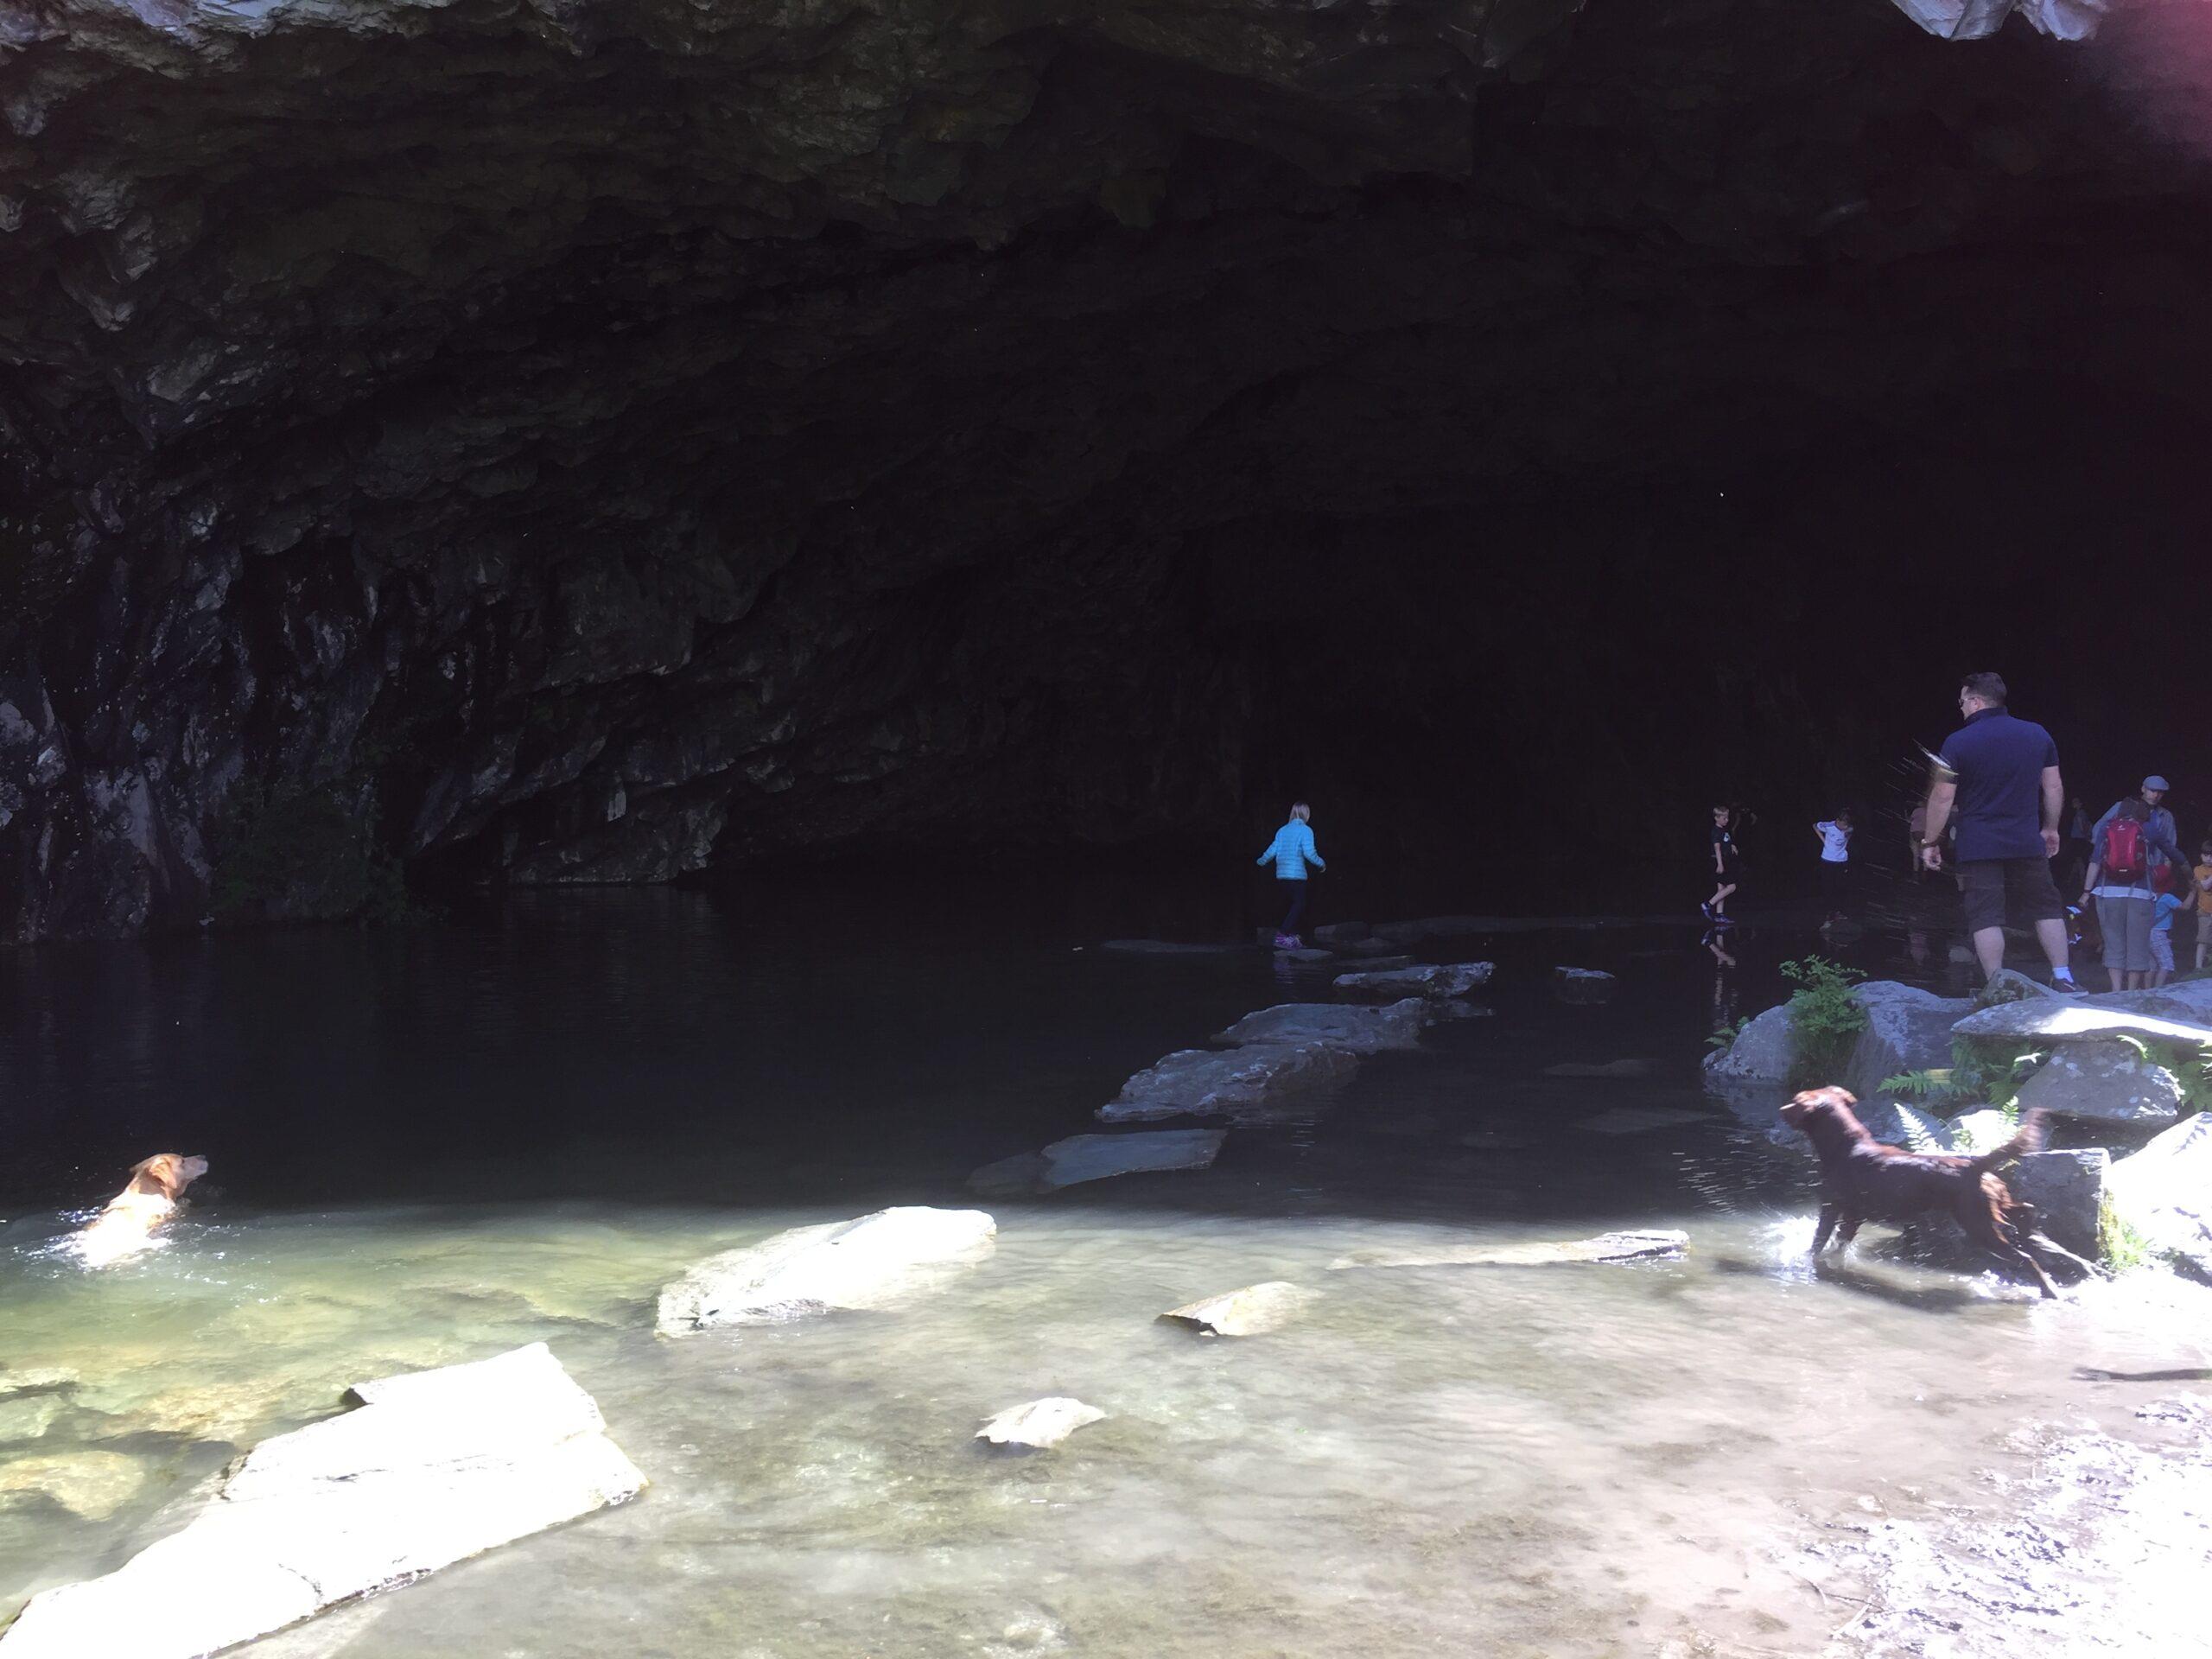 Exploring Rydal Caves